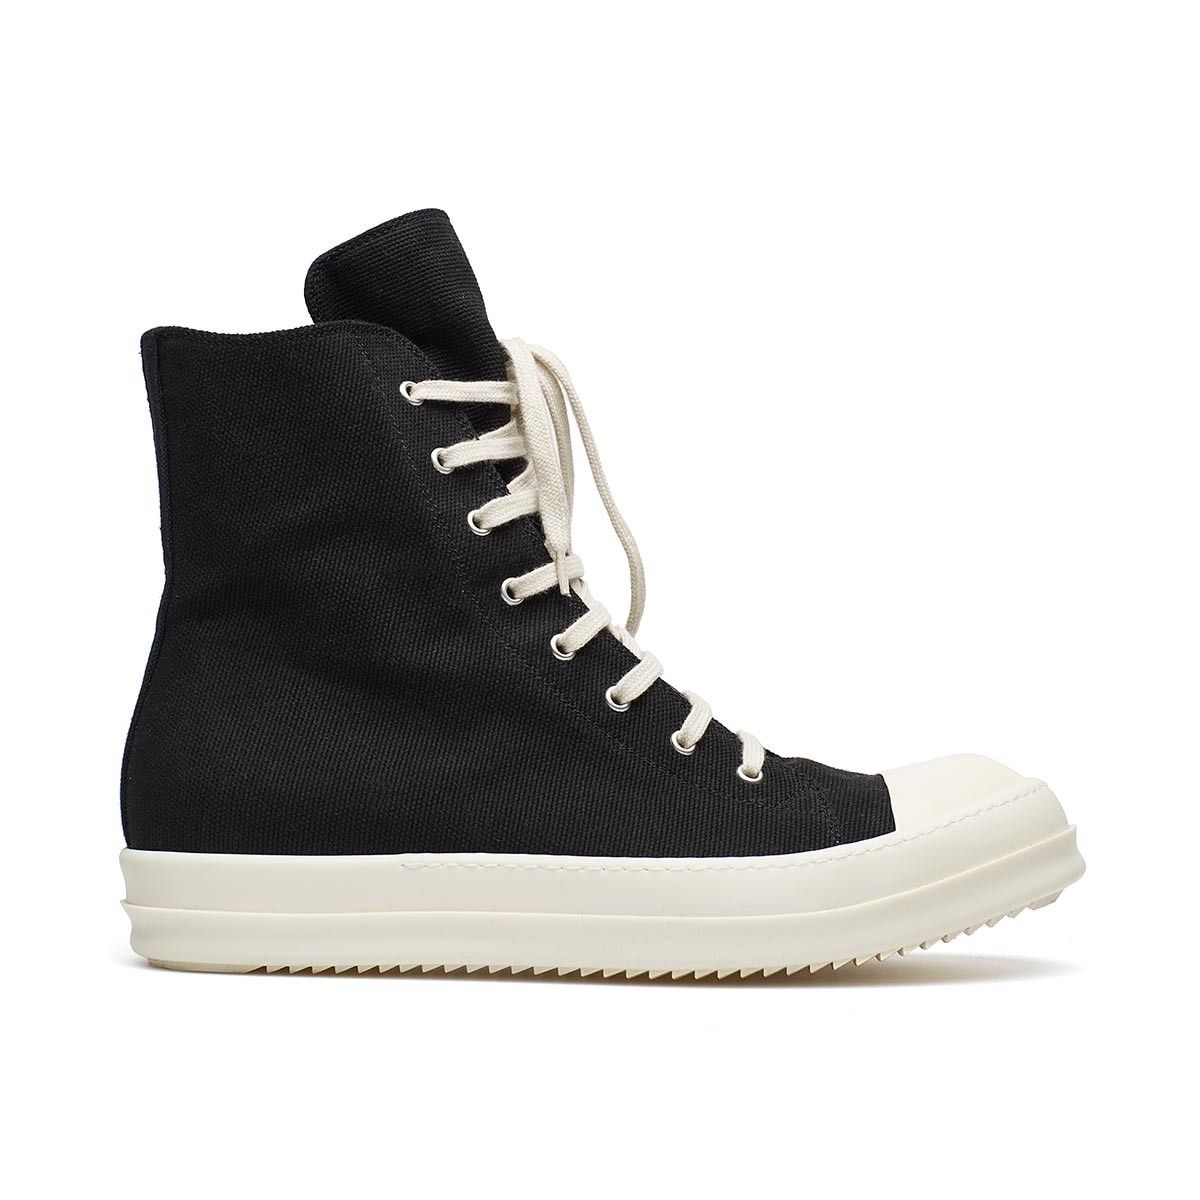 Sneakers from the F/W2016-17 Rick Owens DRKSHDW collection in black